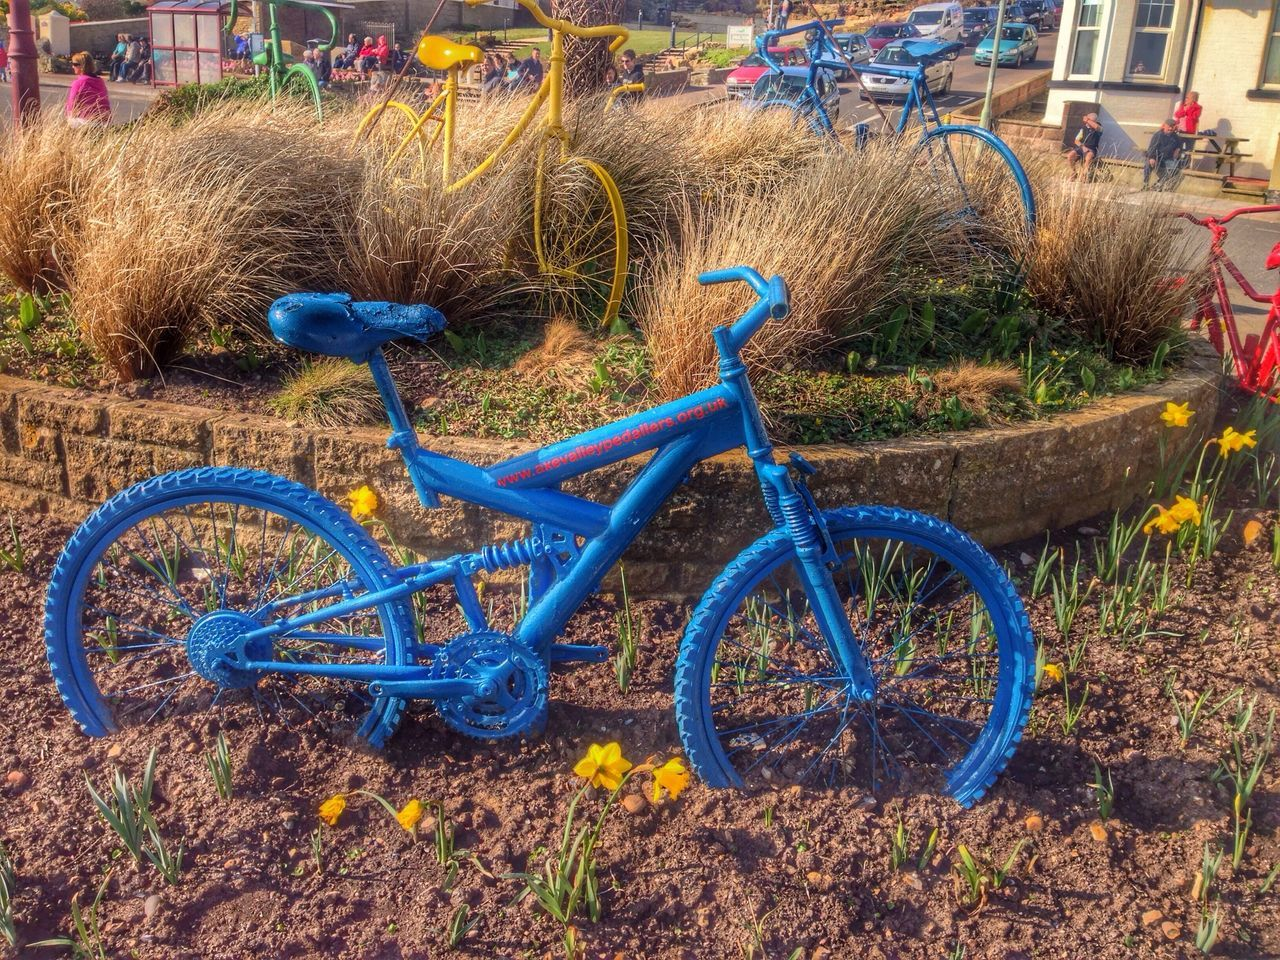 bicycle, transportation, land vehicle, mode of transport, stationary, grass, field, outdoors, day, no people, blue, plant, spoke, flower, tire, bicycle rack, nature